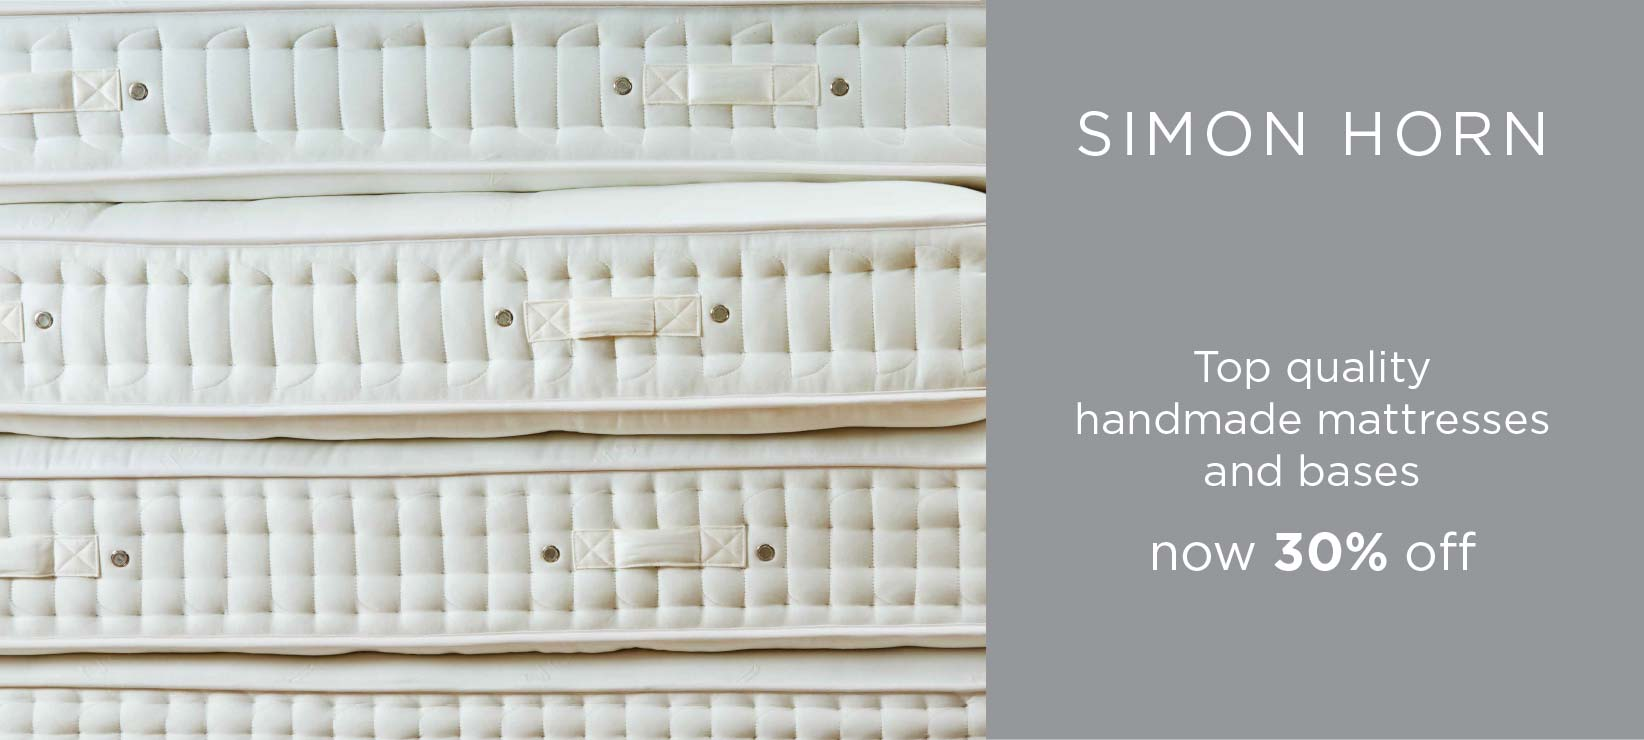 30% Off Top Quality Handmade Simon Horn Mattresses